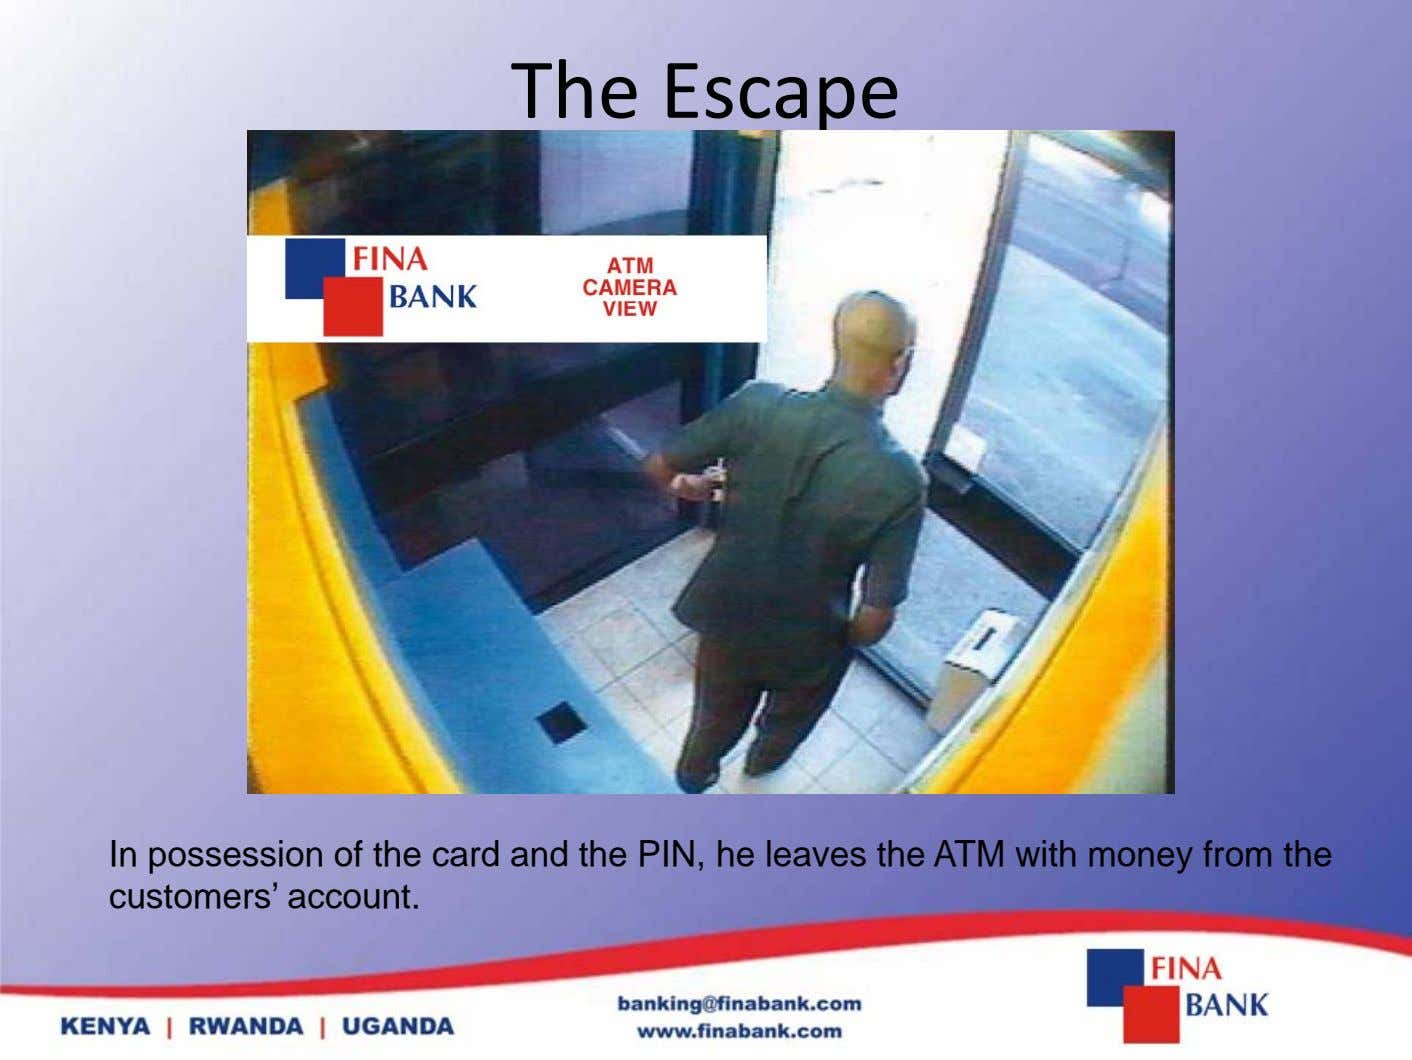 The Escape In possession of the card and the PIN, he leaves the ATM with